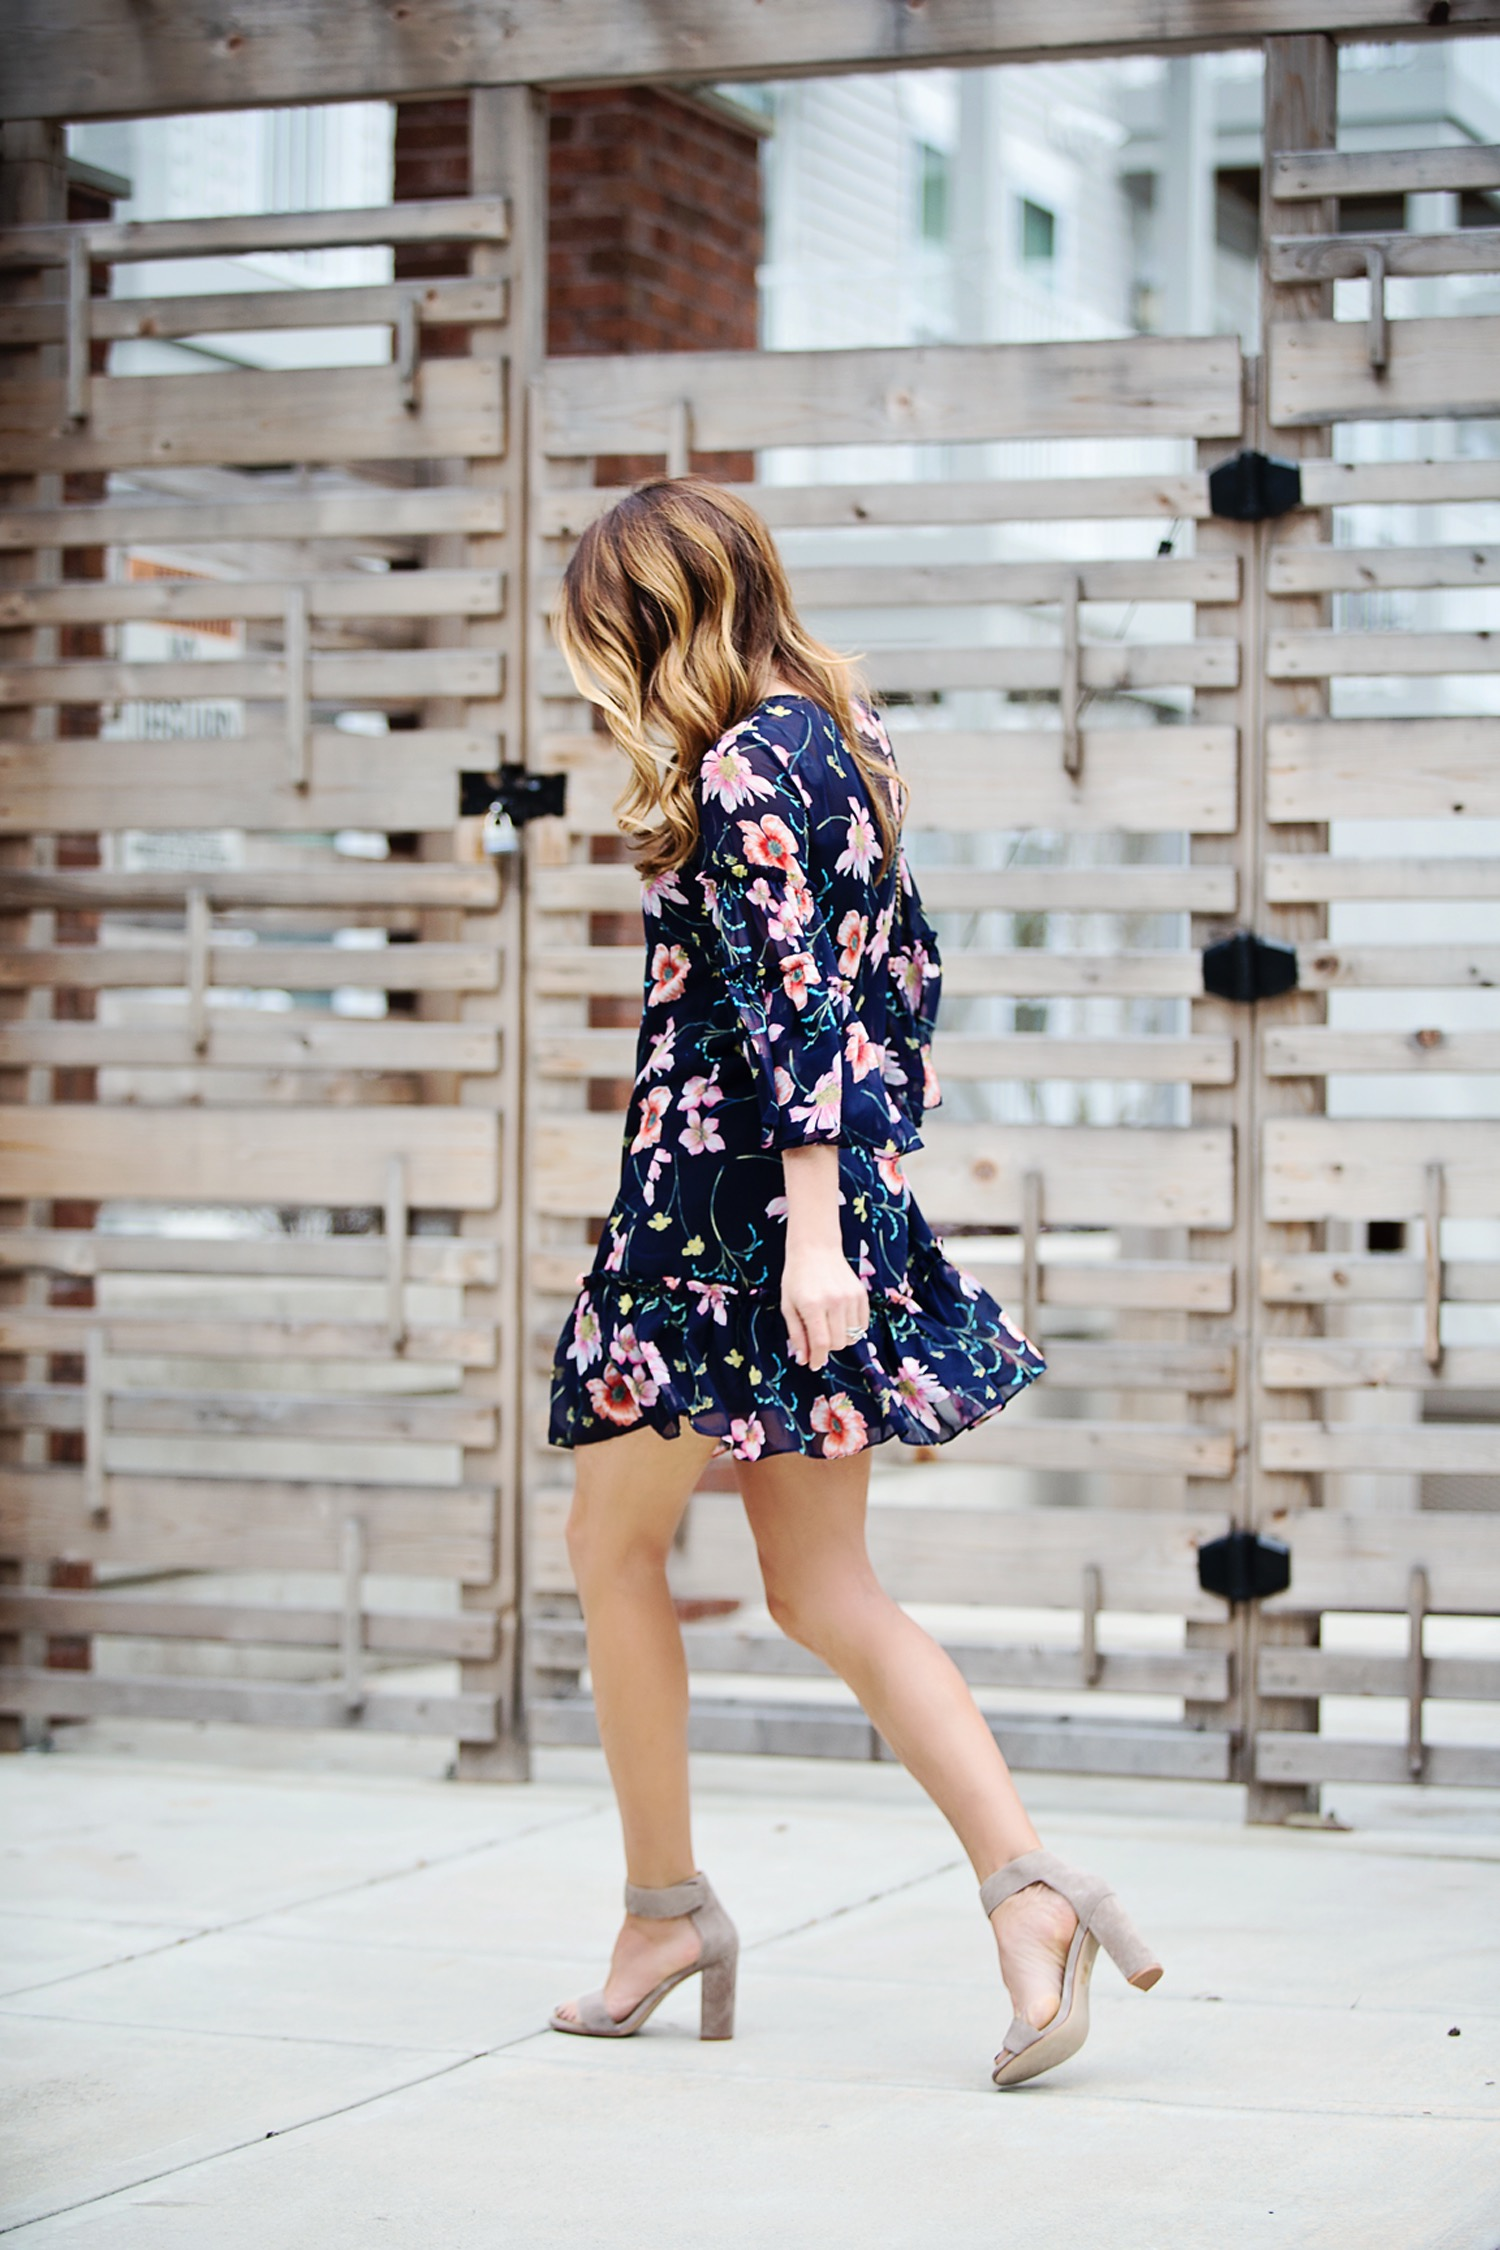 The Motherchic wearing Chelsea28 bell sleeve floral dress from Nordstrom